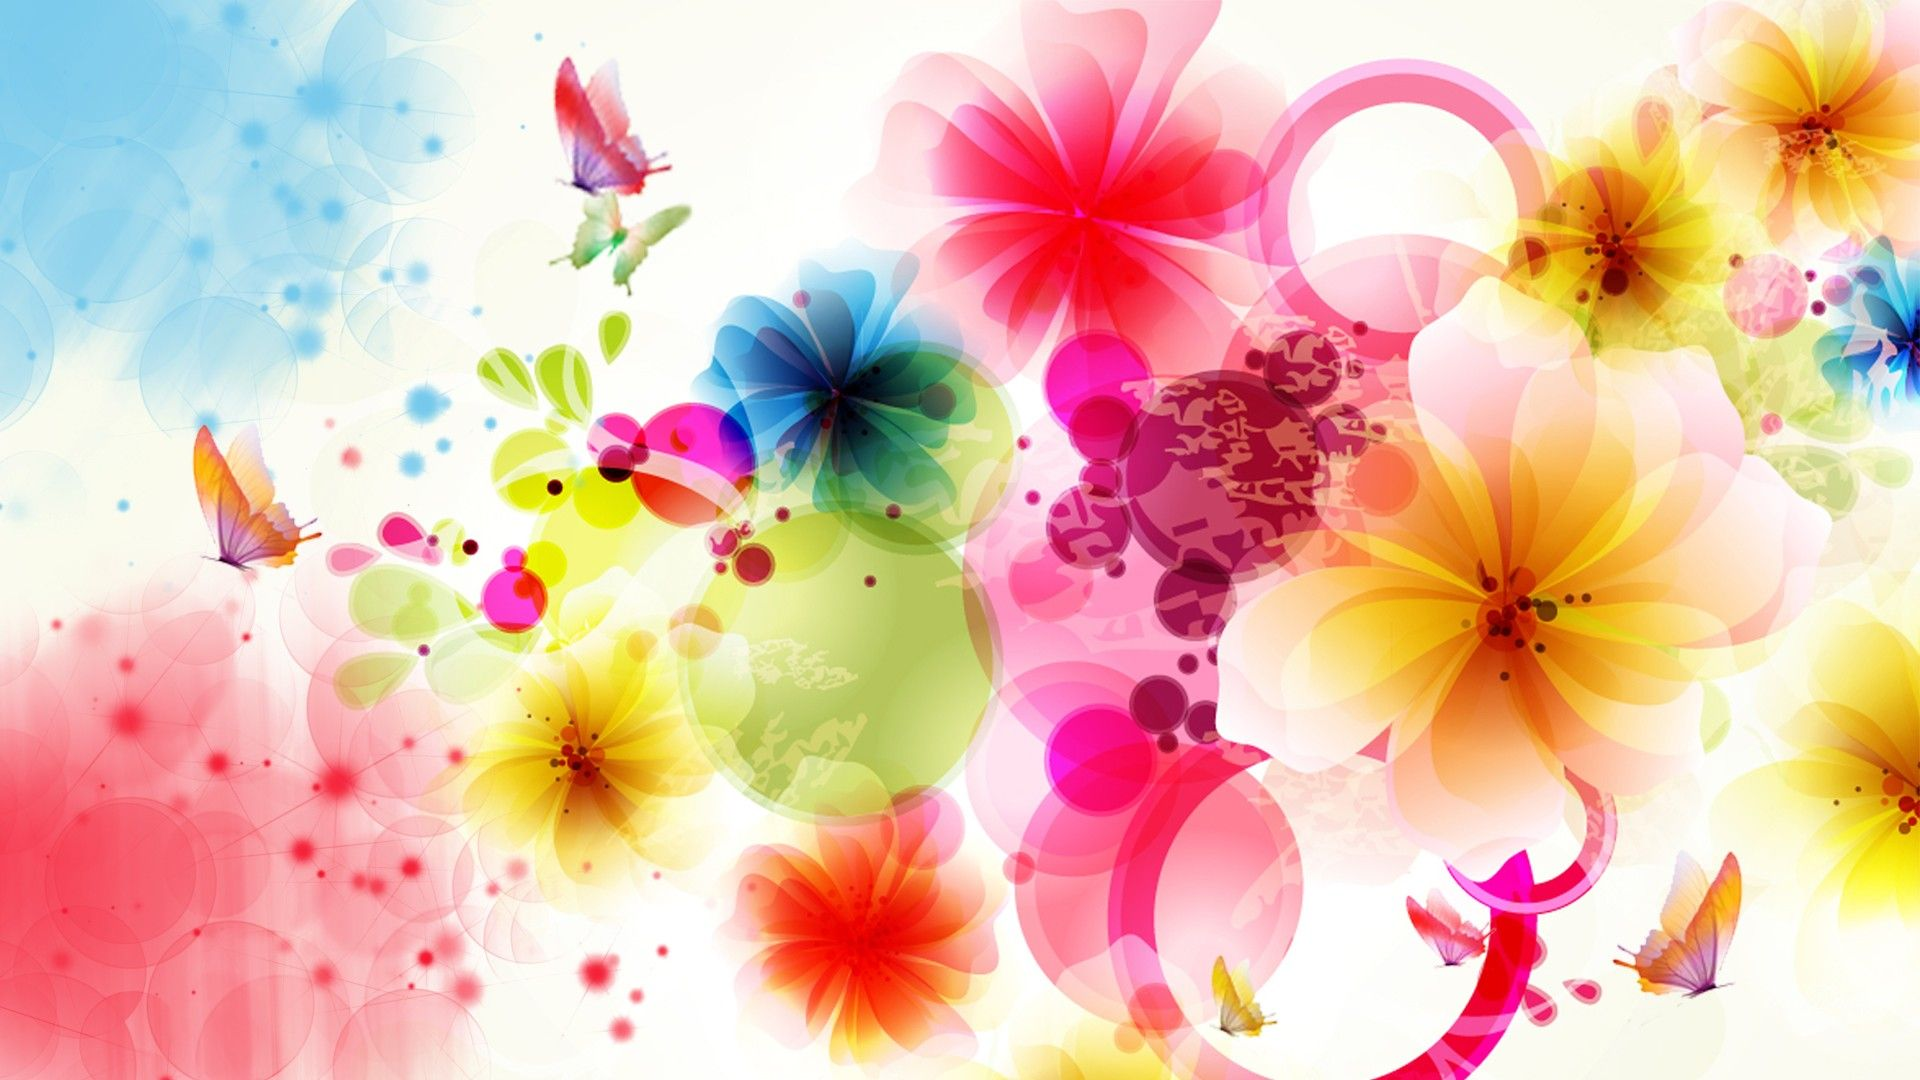 Abstract Flower Wallpaper High Definition High Quality Widescreen